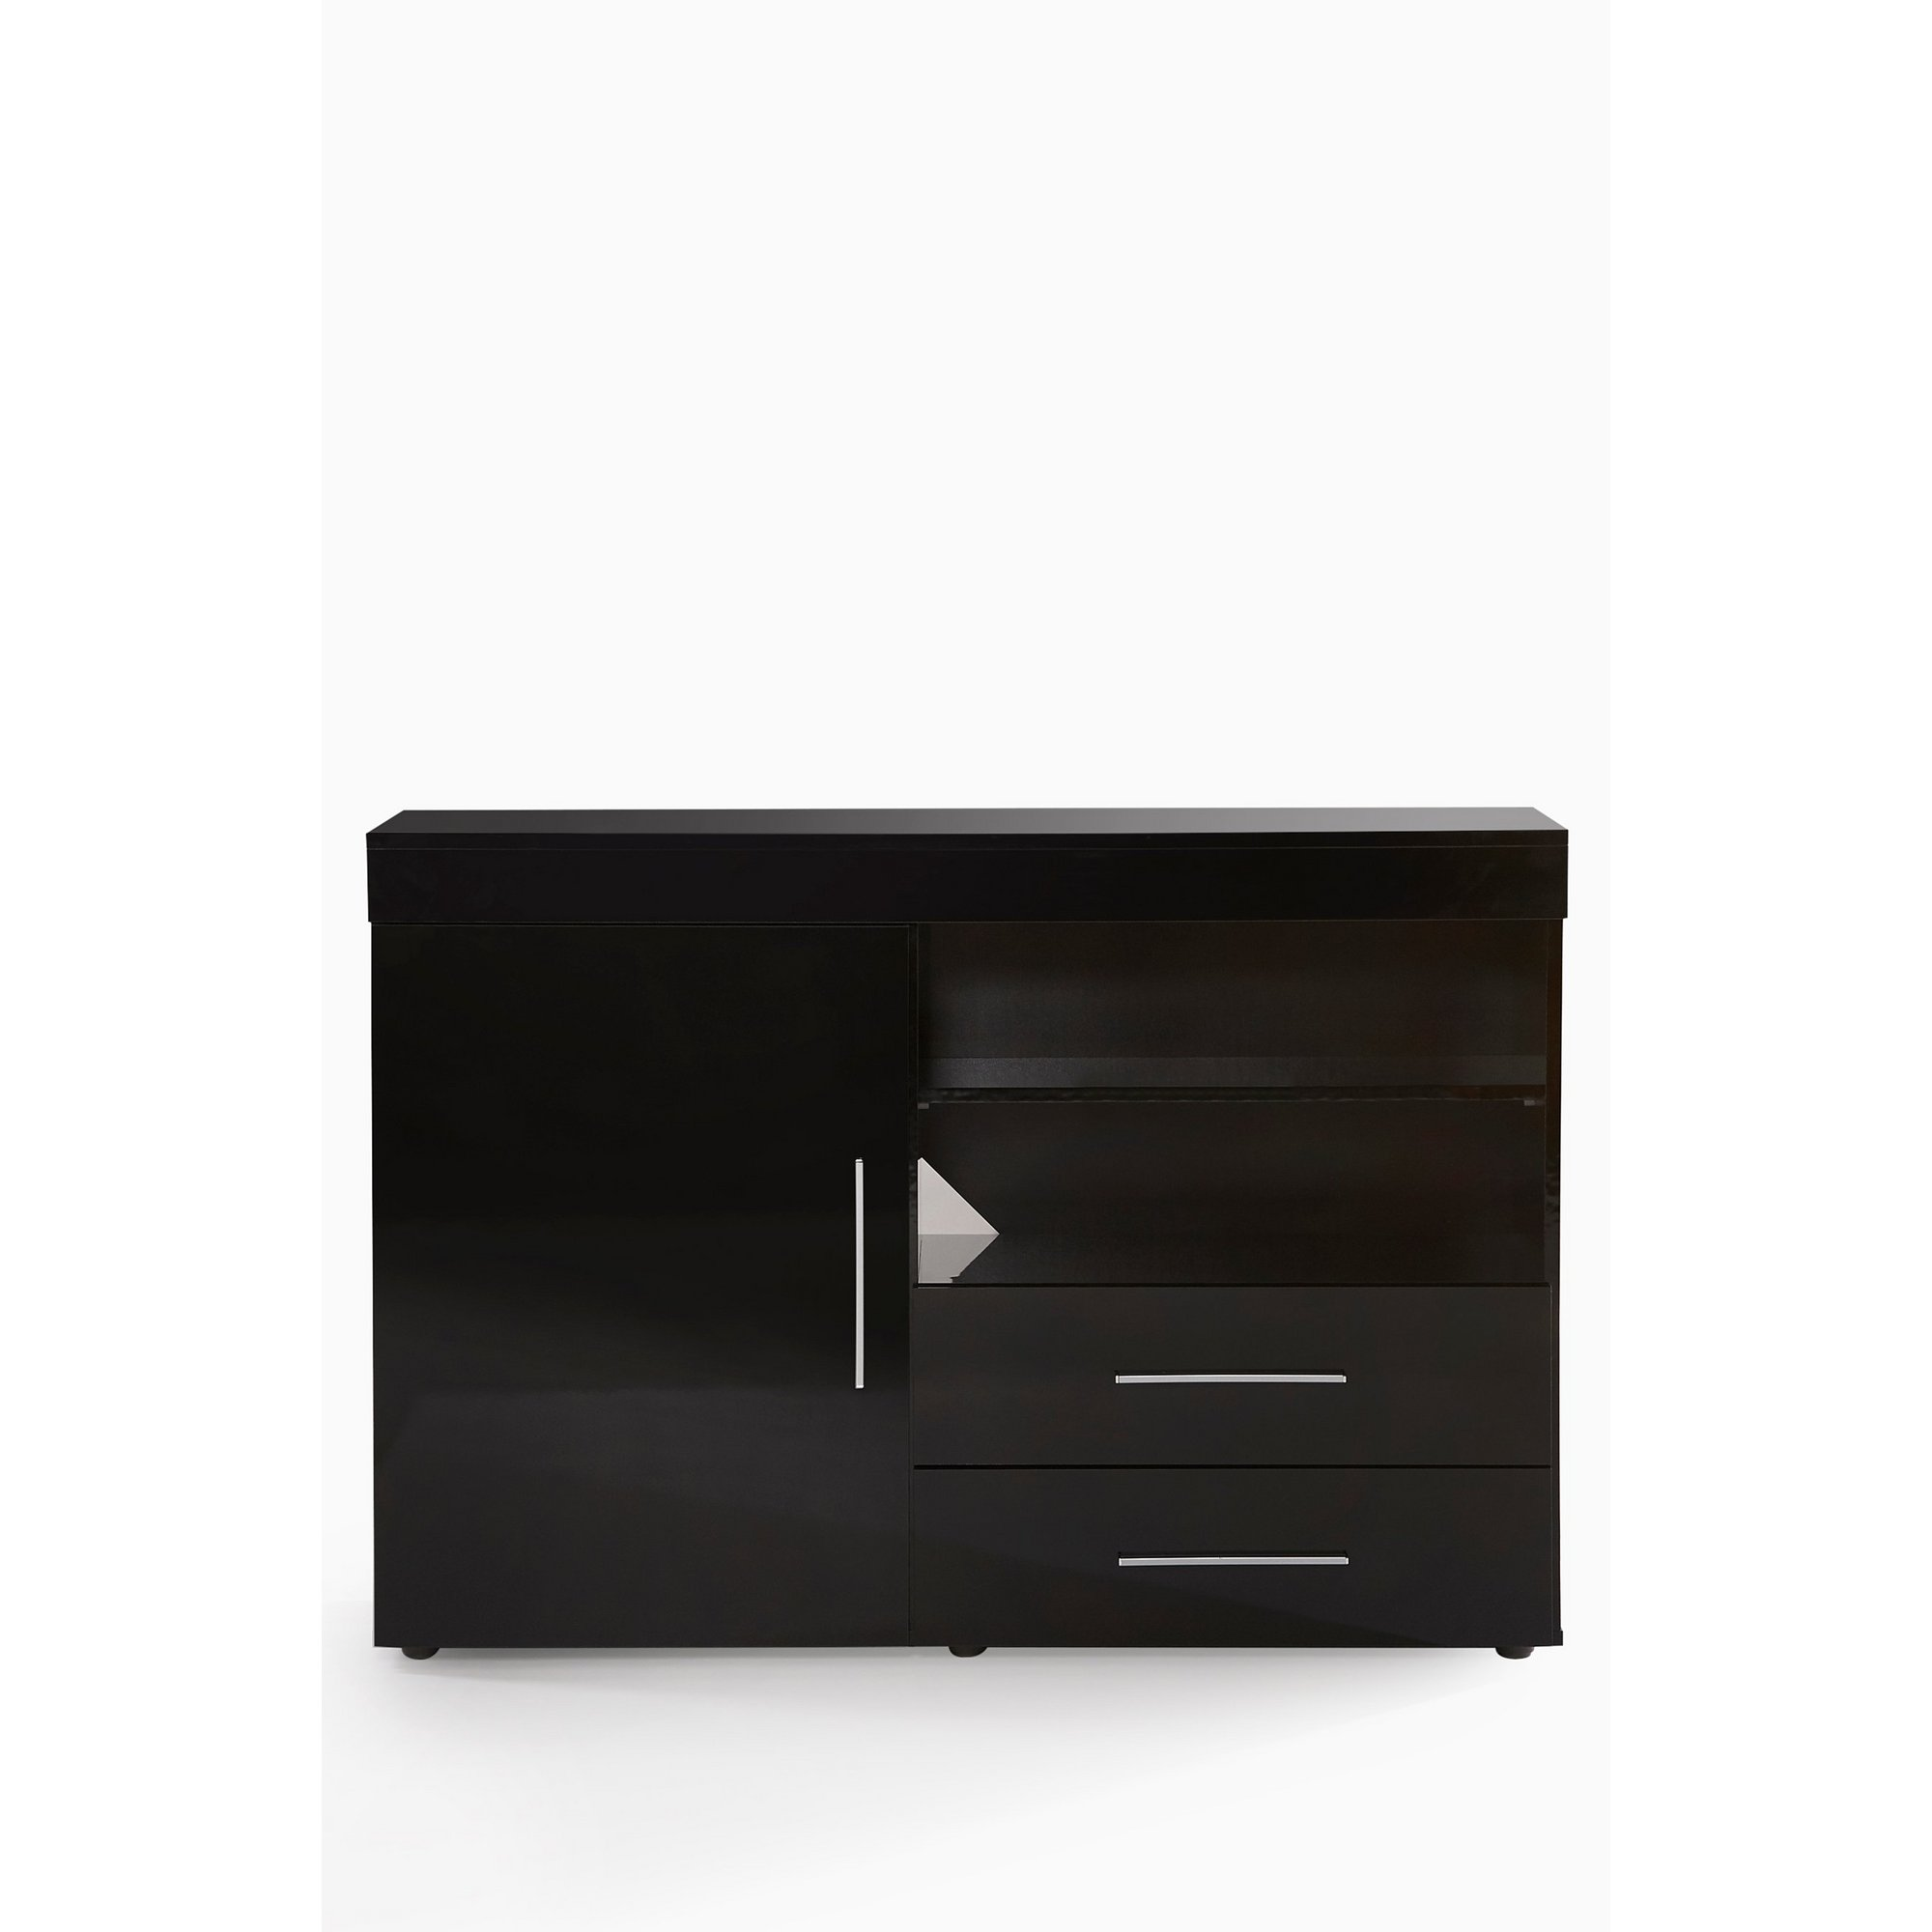 Image of Edgeware Small Sideboard